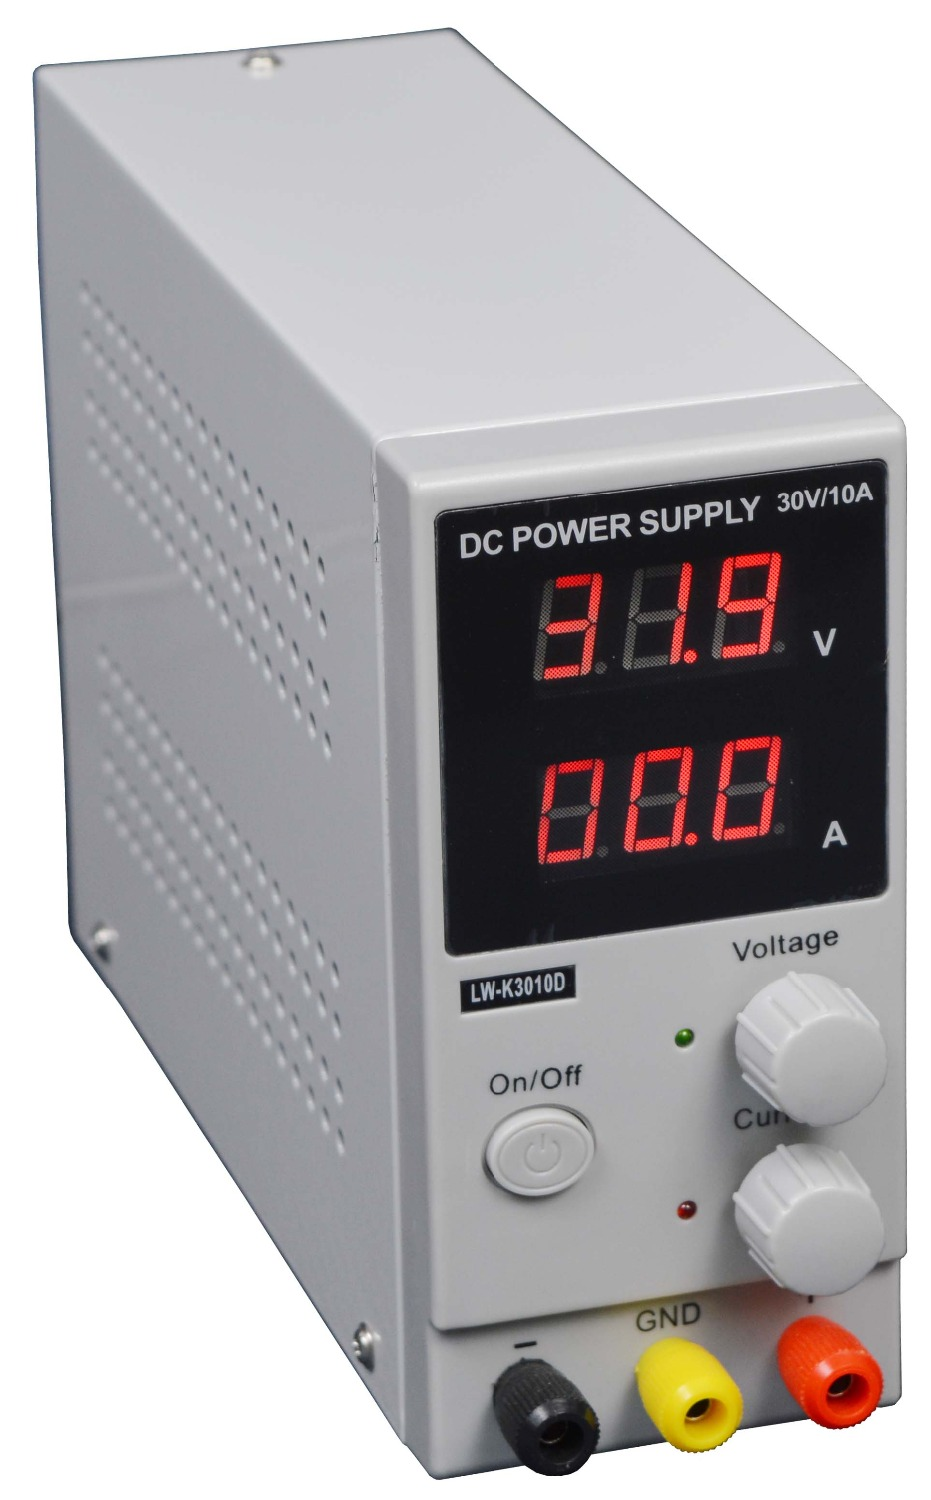 LW 3010D DC power 110V 220V Mini Adjustable Digital DC power supply 0~30V 0~10A Switching Power supply certification US EU Plug cps 3010ii 0 30v 0 10a low power digital adjustable dc power supply cps3010 switching power supply